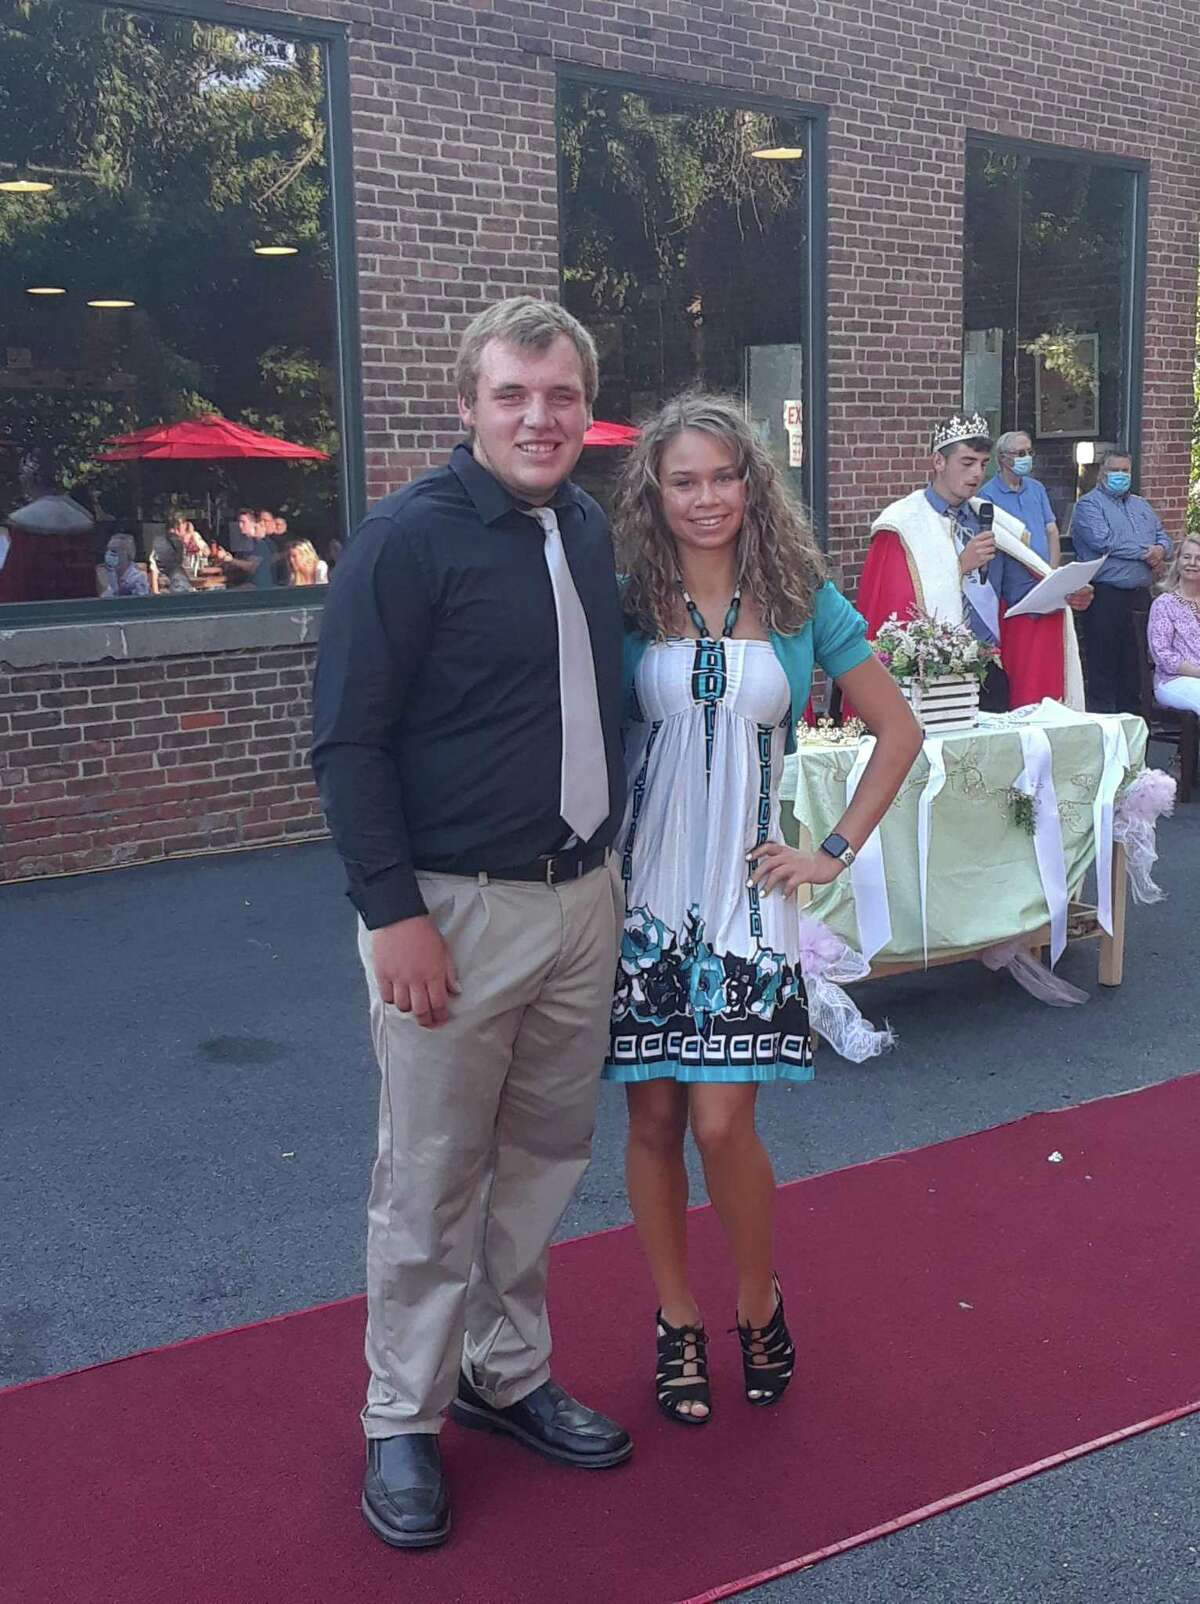 The 86th annual Laurel Festival, which was almost completely canceled by COVID-19, includes the Laurel Queen and King contest. Little Red Barn Brewers provided the space for the crowning of the 2020 Queen and King, which included a reception with dinner and honoring the winners.